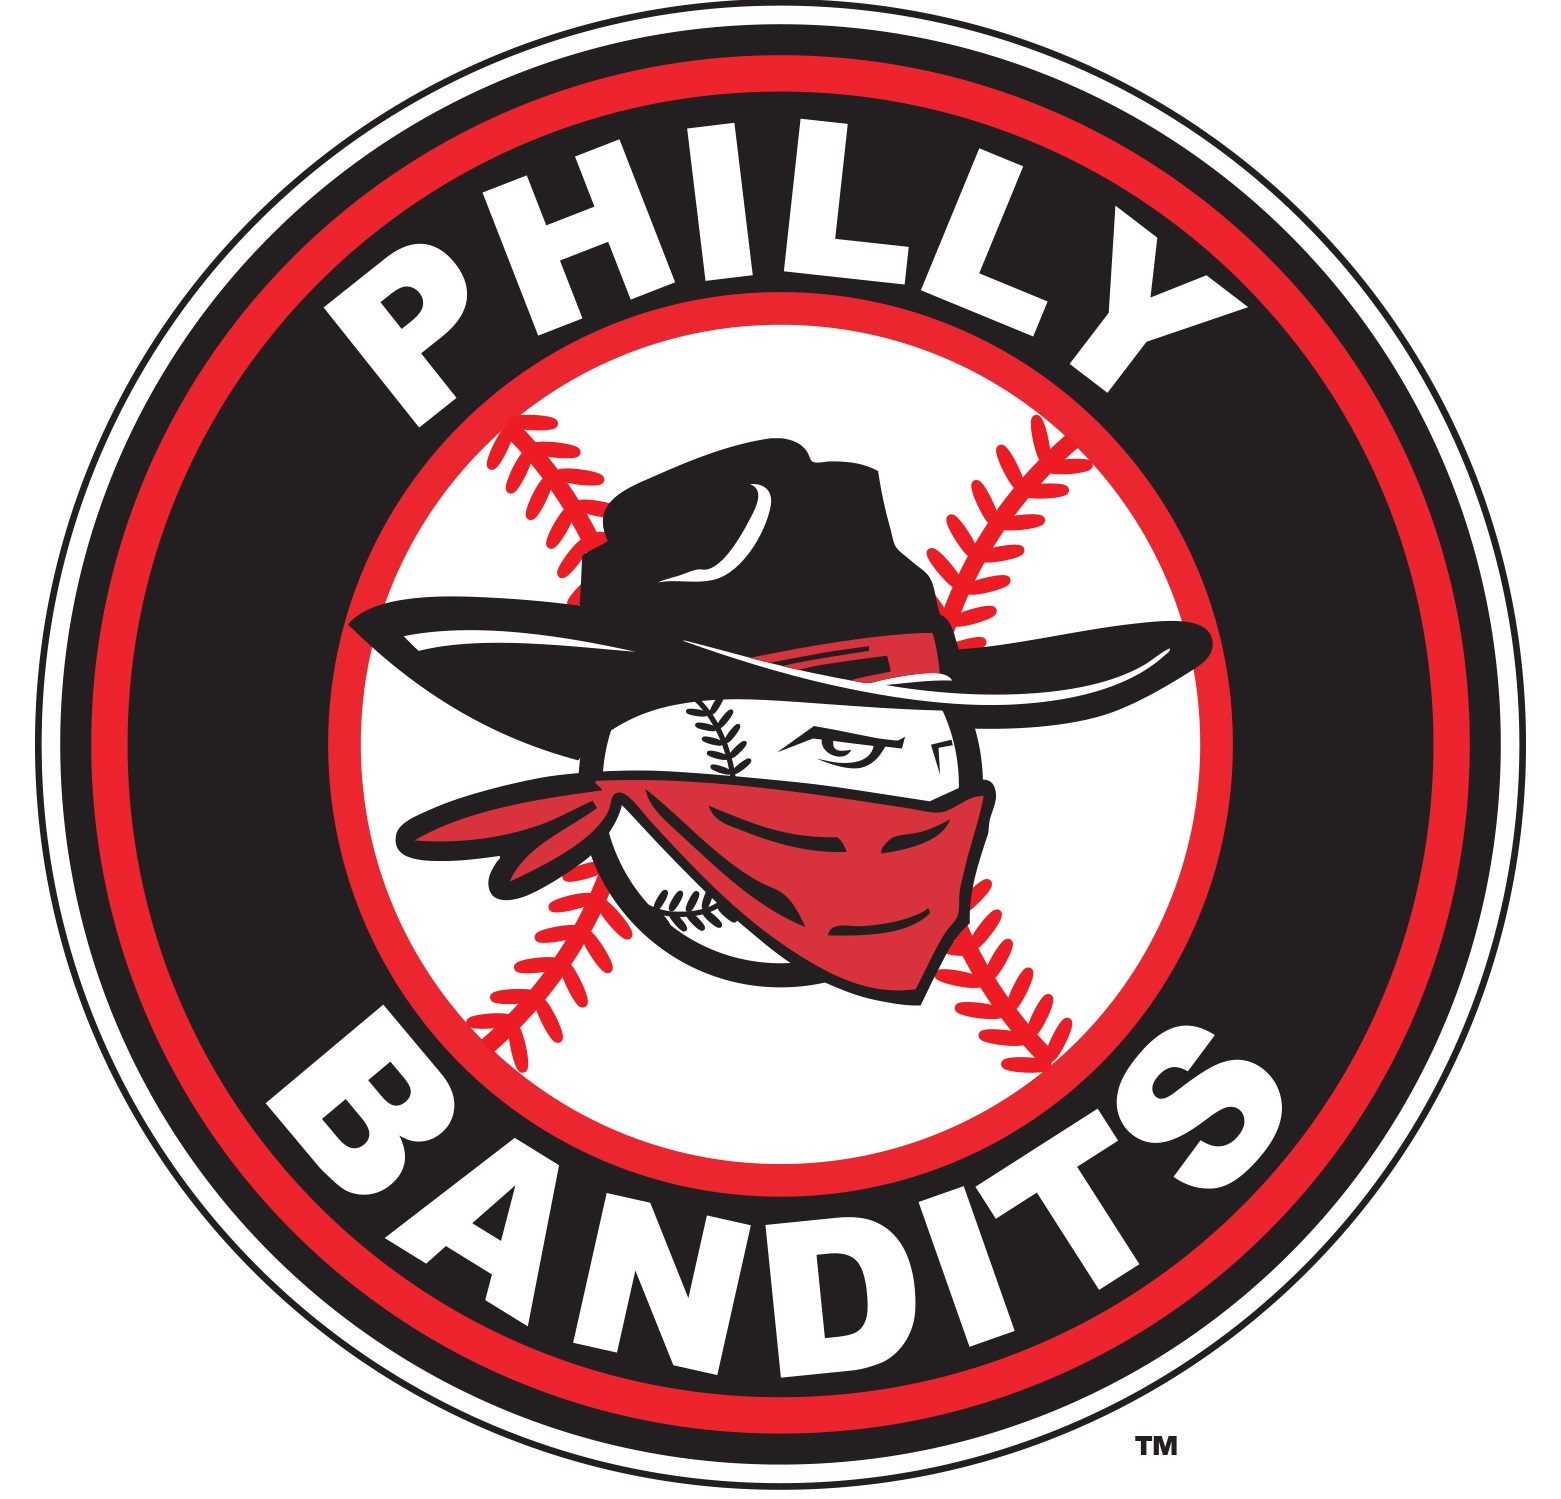 Philly Bandits